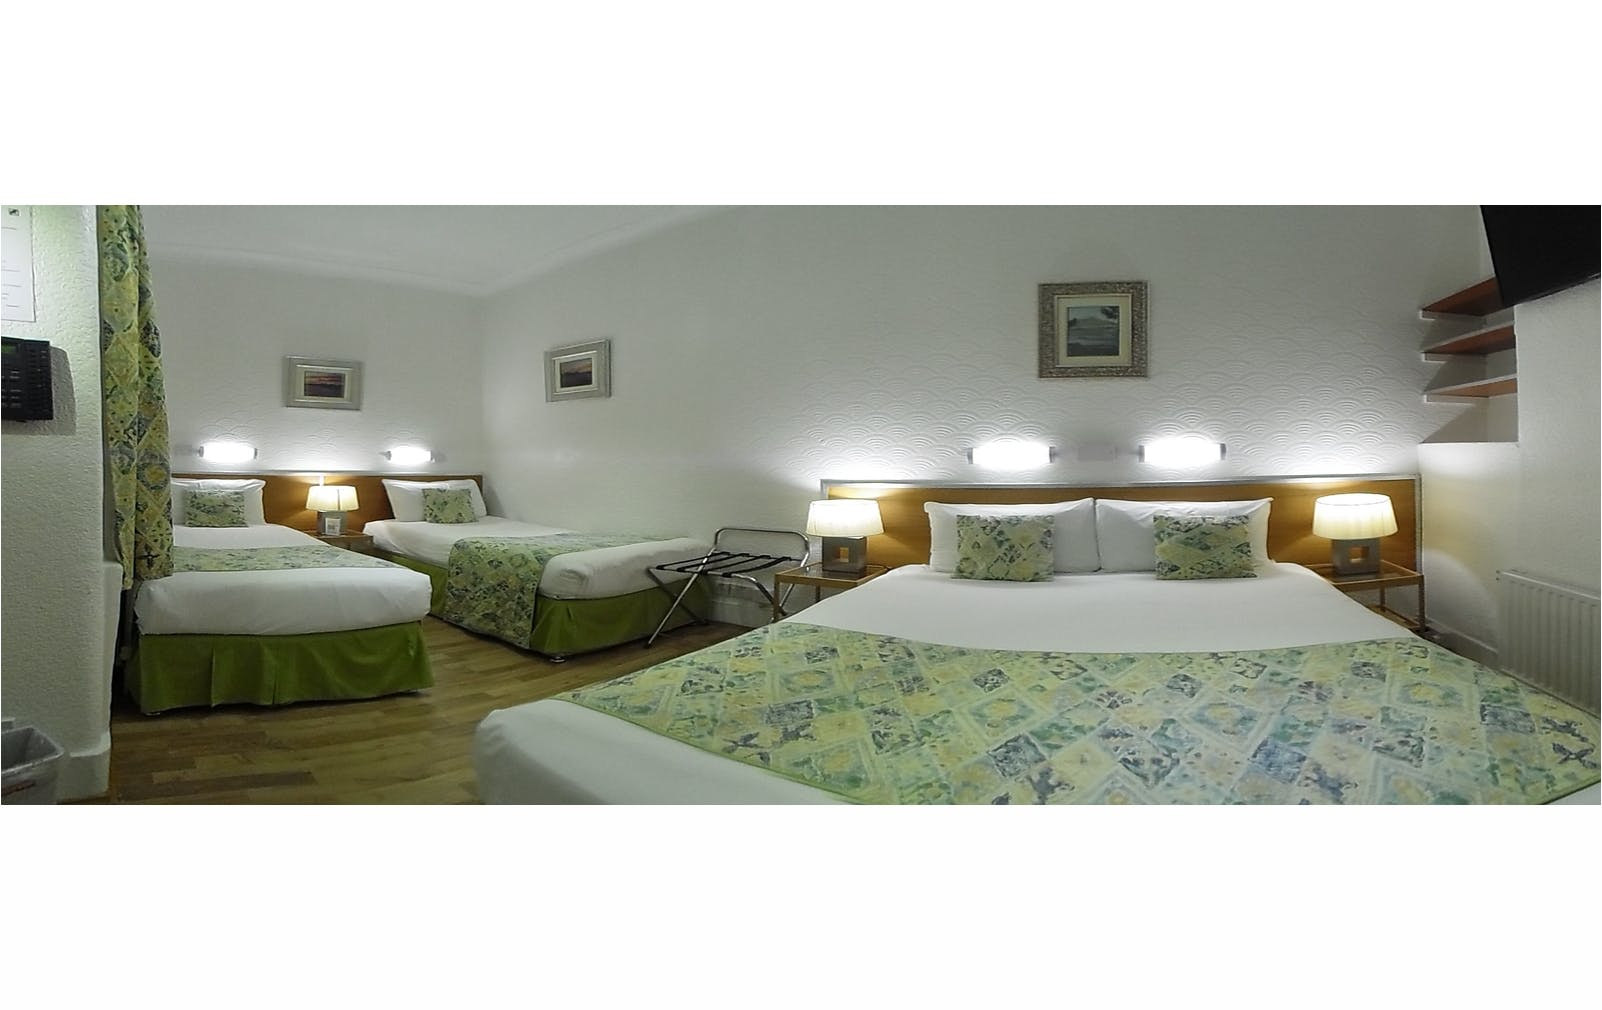 Boutique Hotel central London B&B Accommodation familyroom